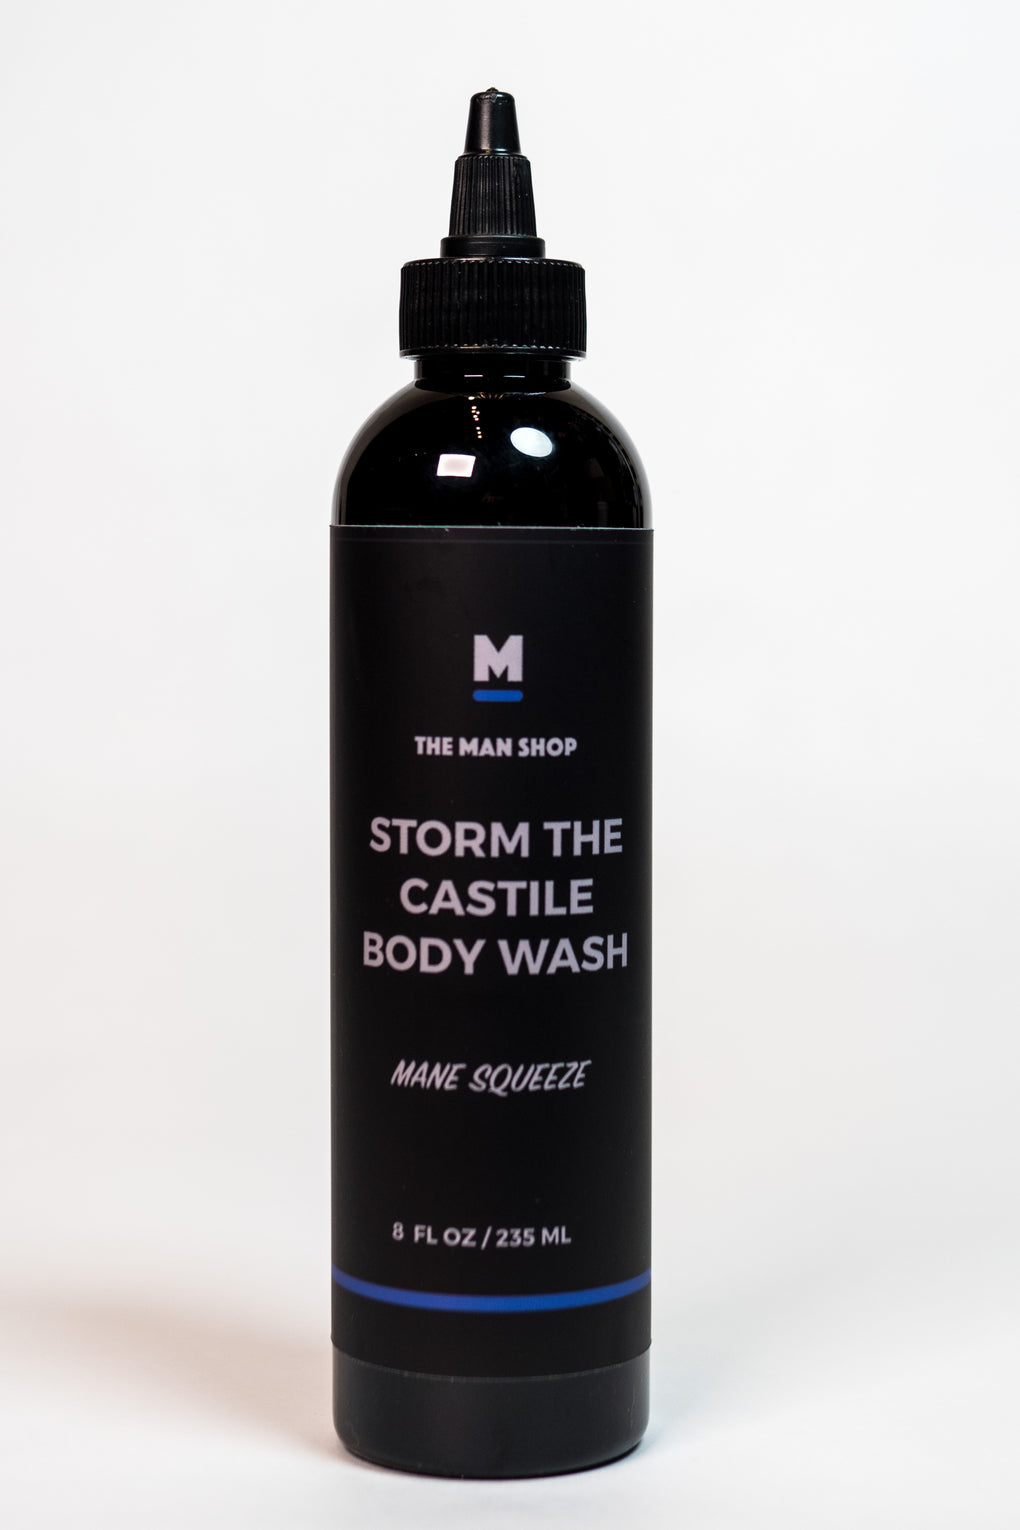 The Man Shop Mane Squeeze Storm the Castile Body Wash at Consigliere